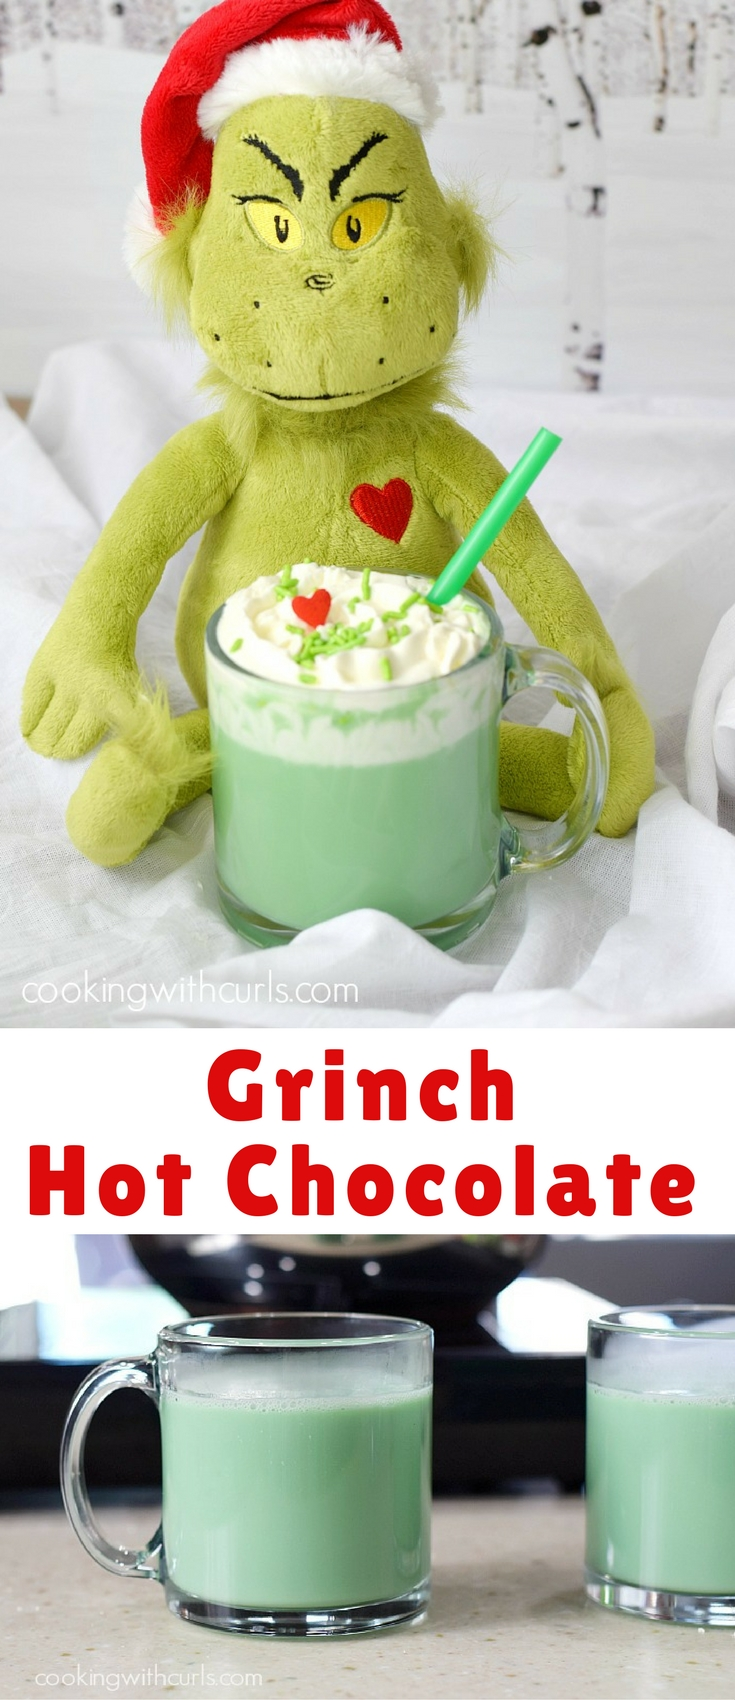 we serve everyone Naughty or Nice Grinch Hot Chocolate!! I'm not exactly sure which is Naughty and which is Nice….the one with the alcohol or the extract…but both of absolutely delicious. 🙂